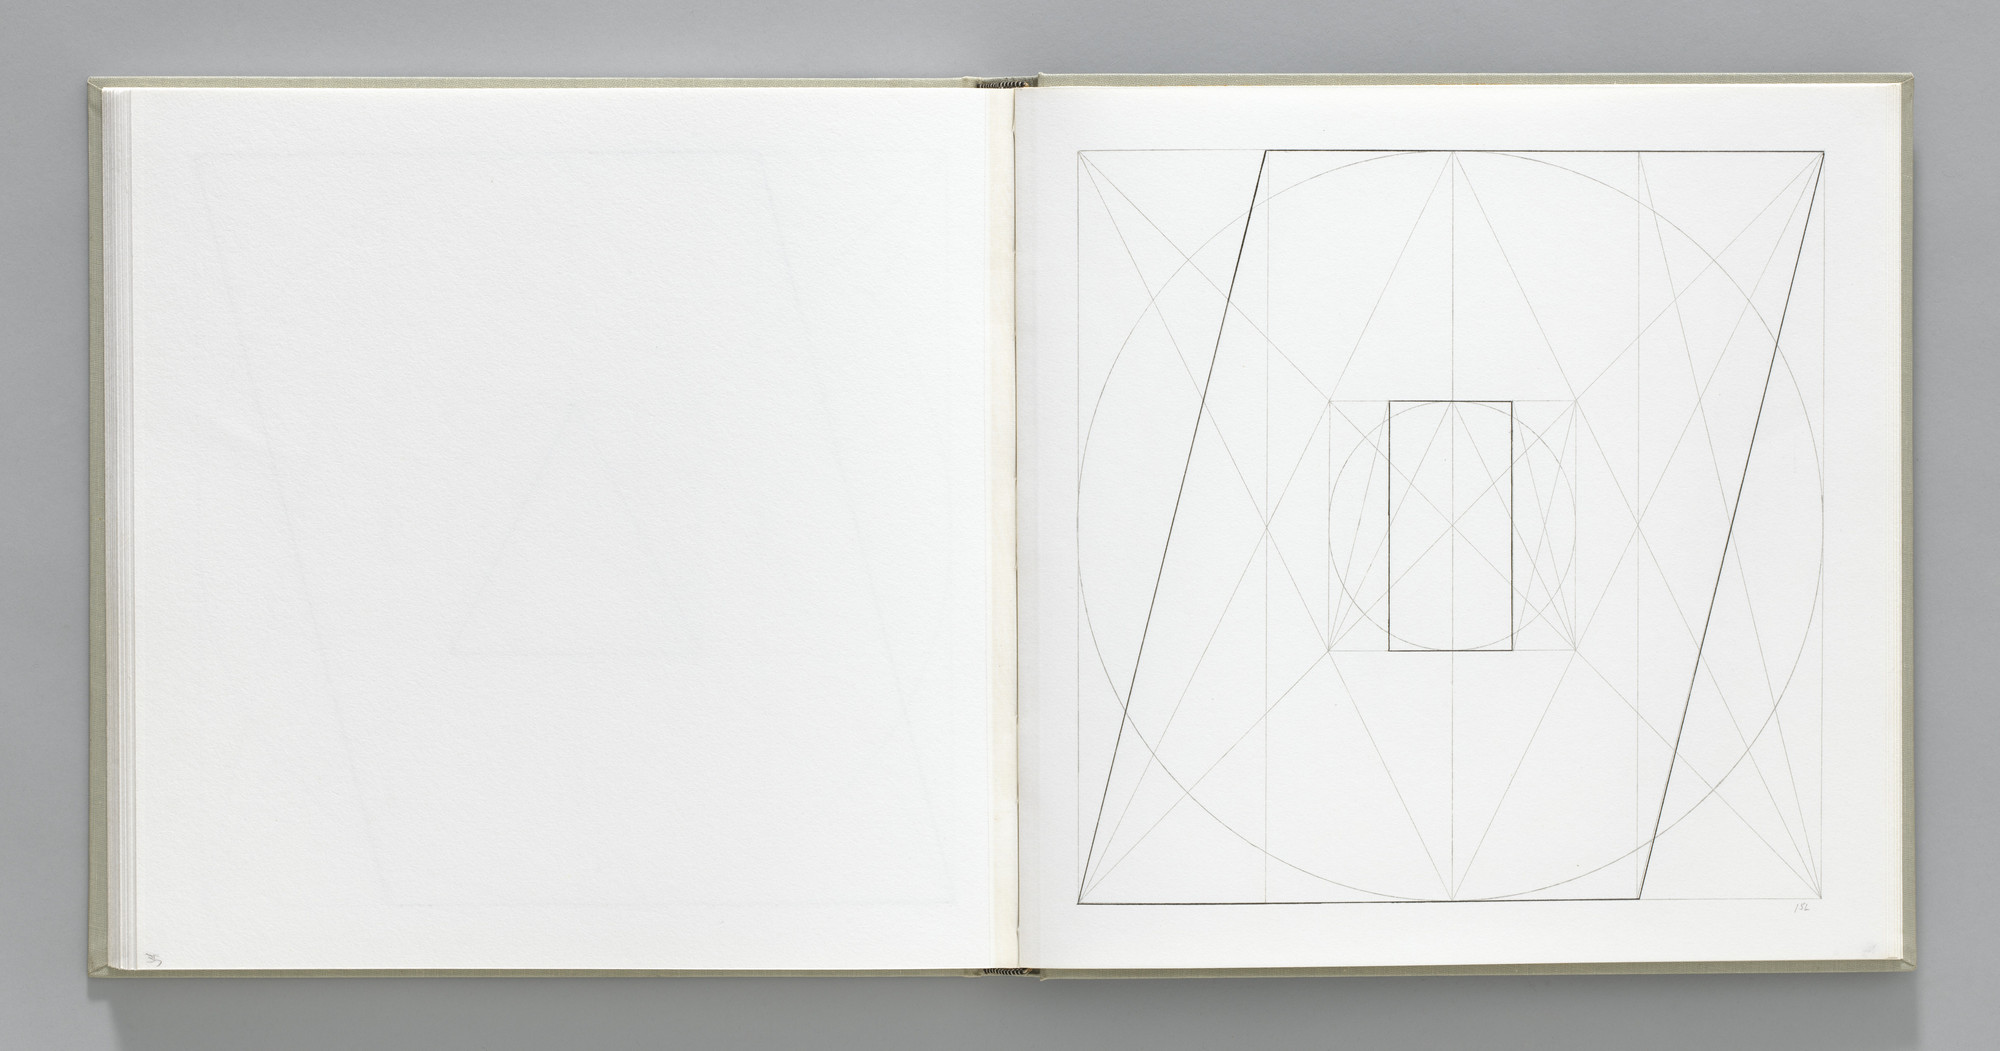 Sol LeWitt. Plate (folio 37) from Geometric Figures within Geometric Figures. 1976 | MoMA